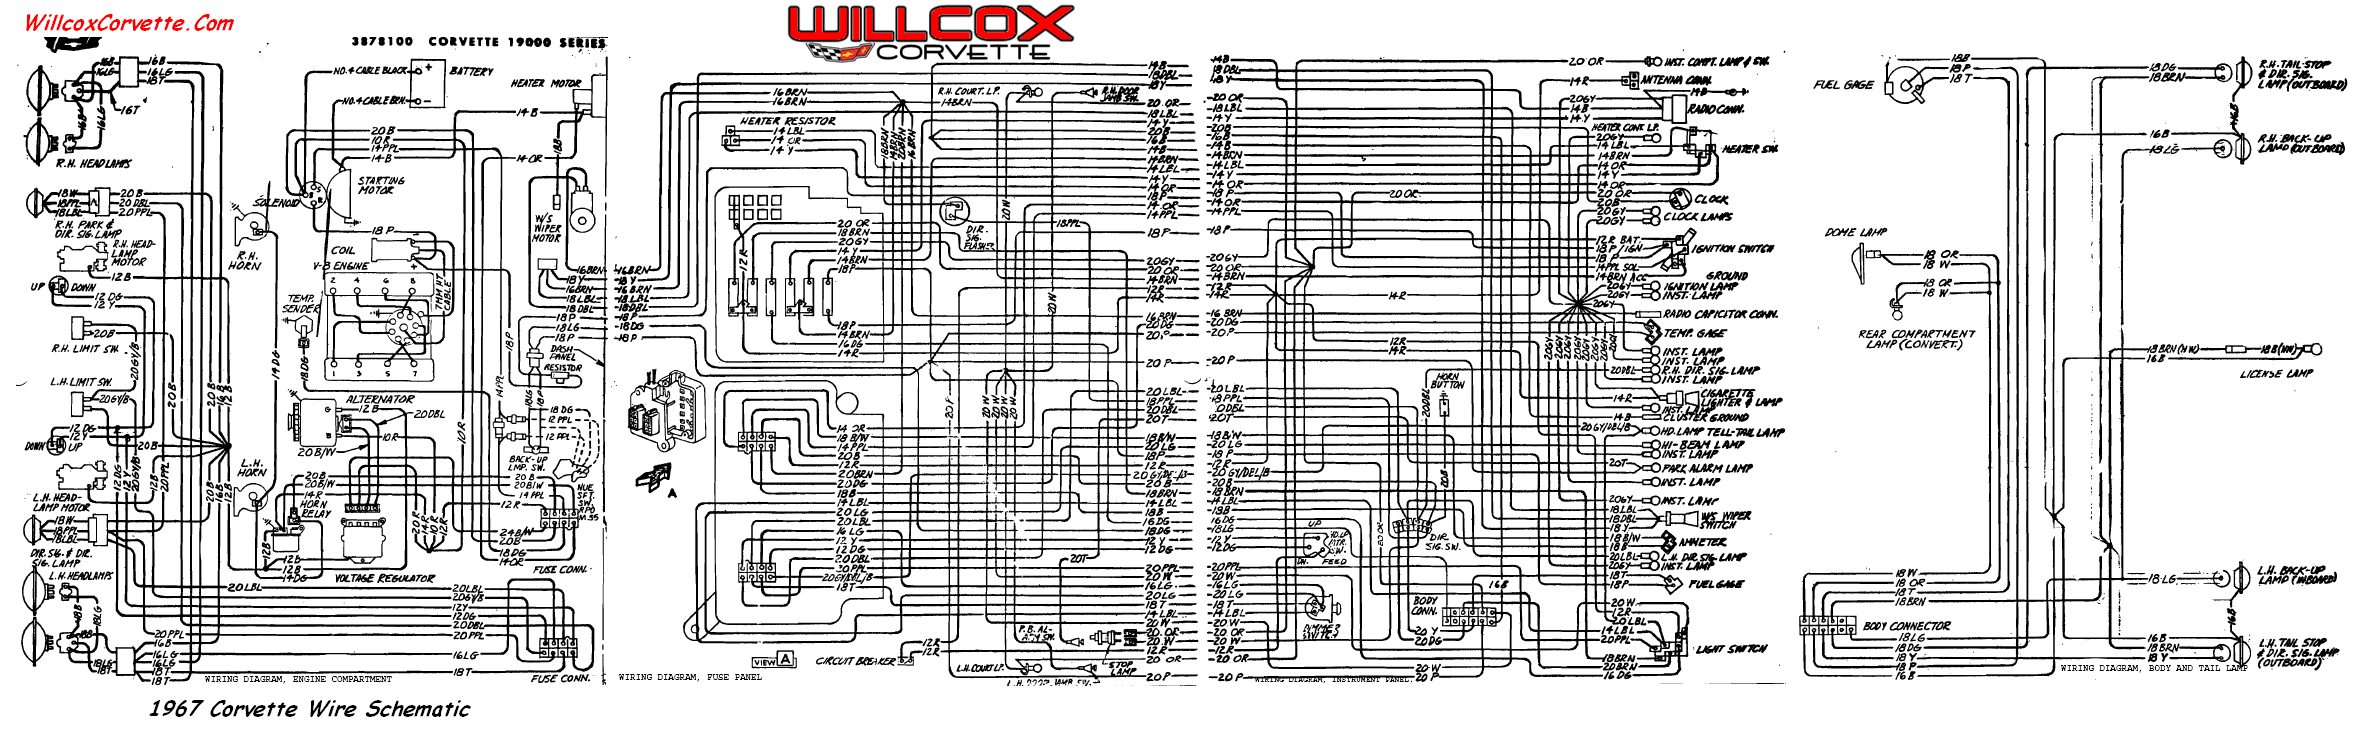 67 Gto Wiring Schematic Custom Diagram 69 Vette Radio U2022 Rh Augmently Co 65